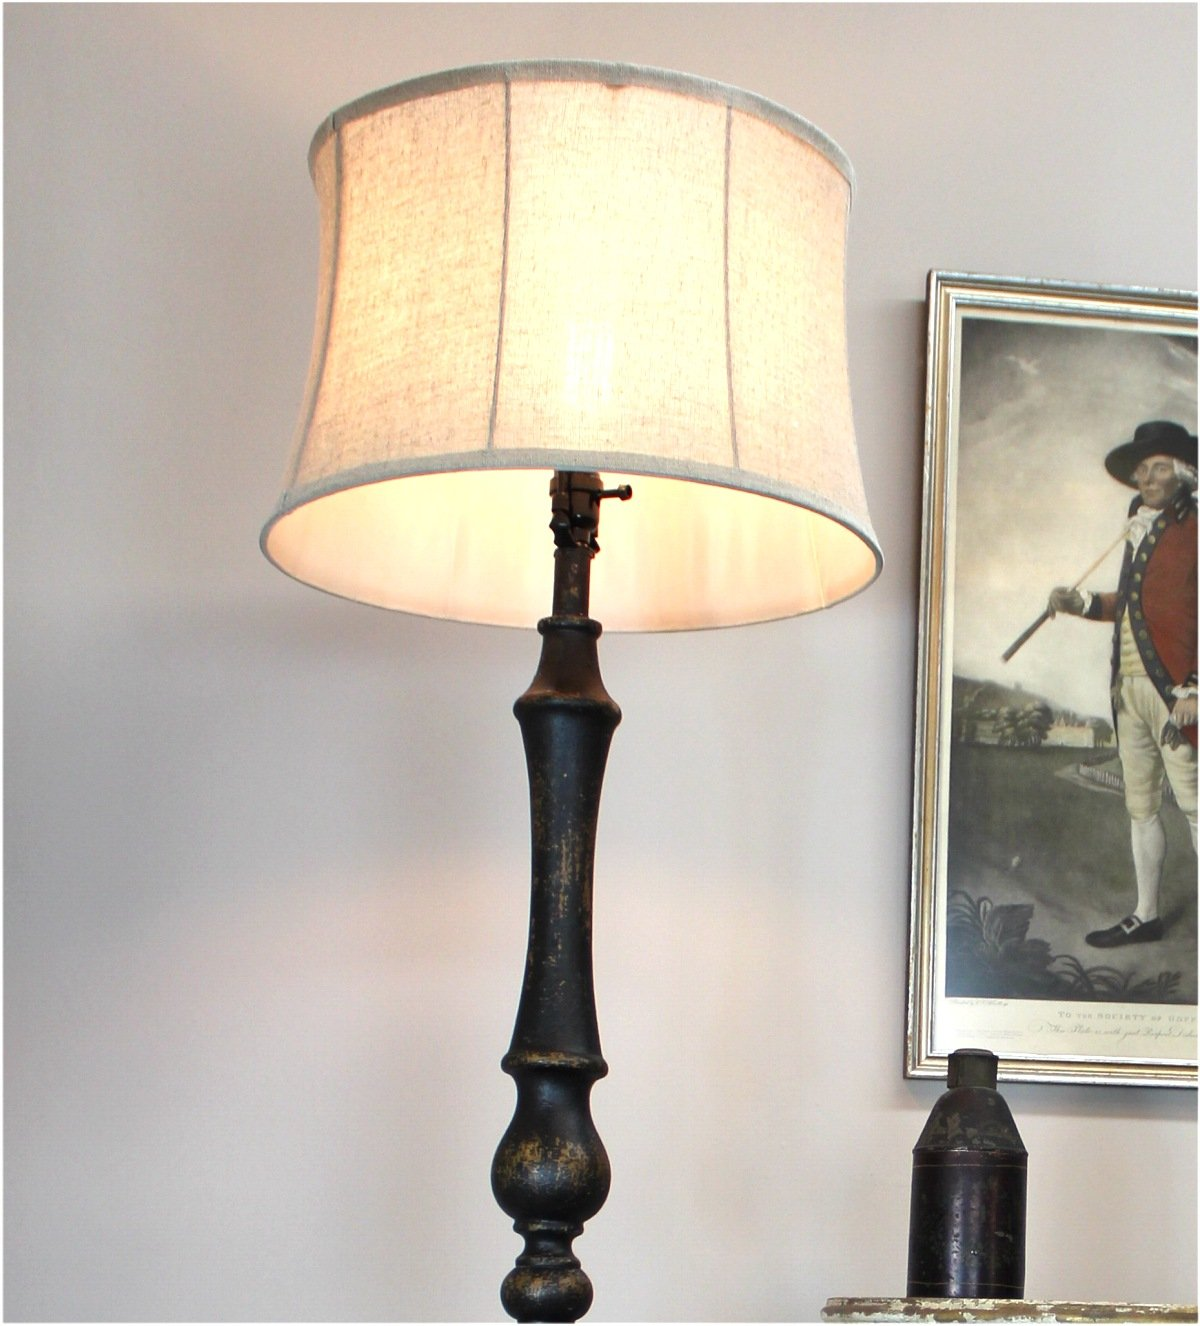 Black Floor Lamp with Aged Black Painted French Country Finish Soft Back Shade by The King's Bay (Image #2)